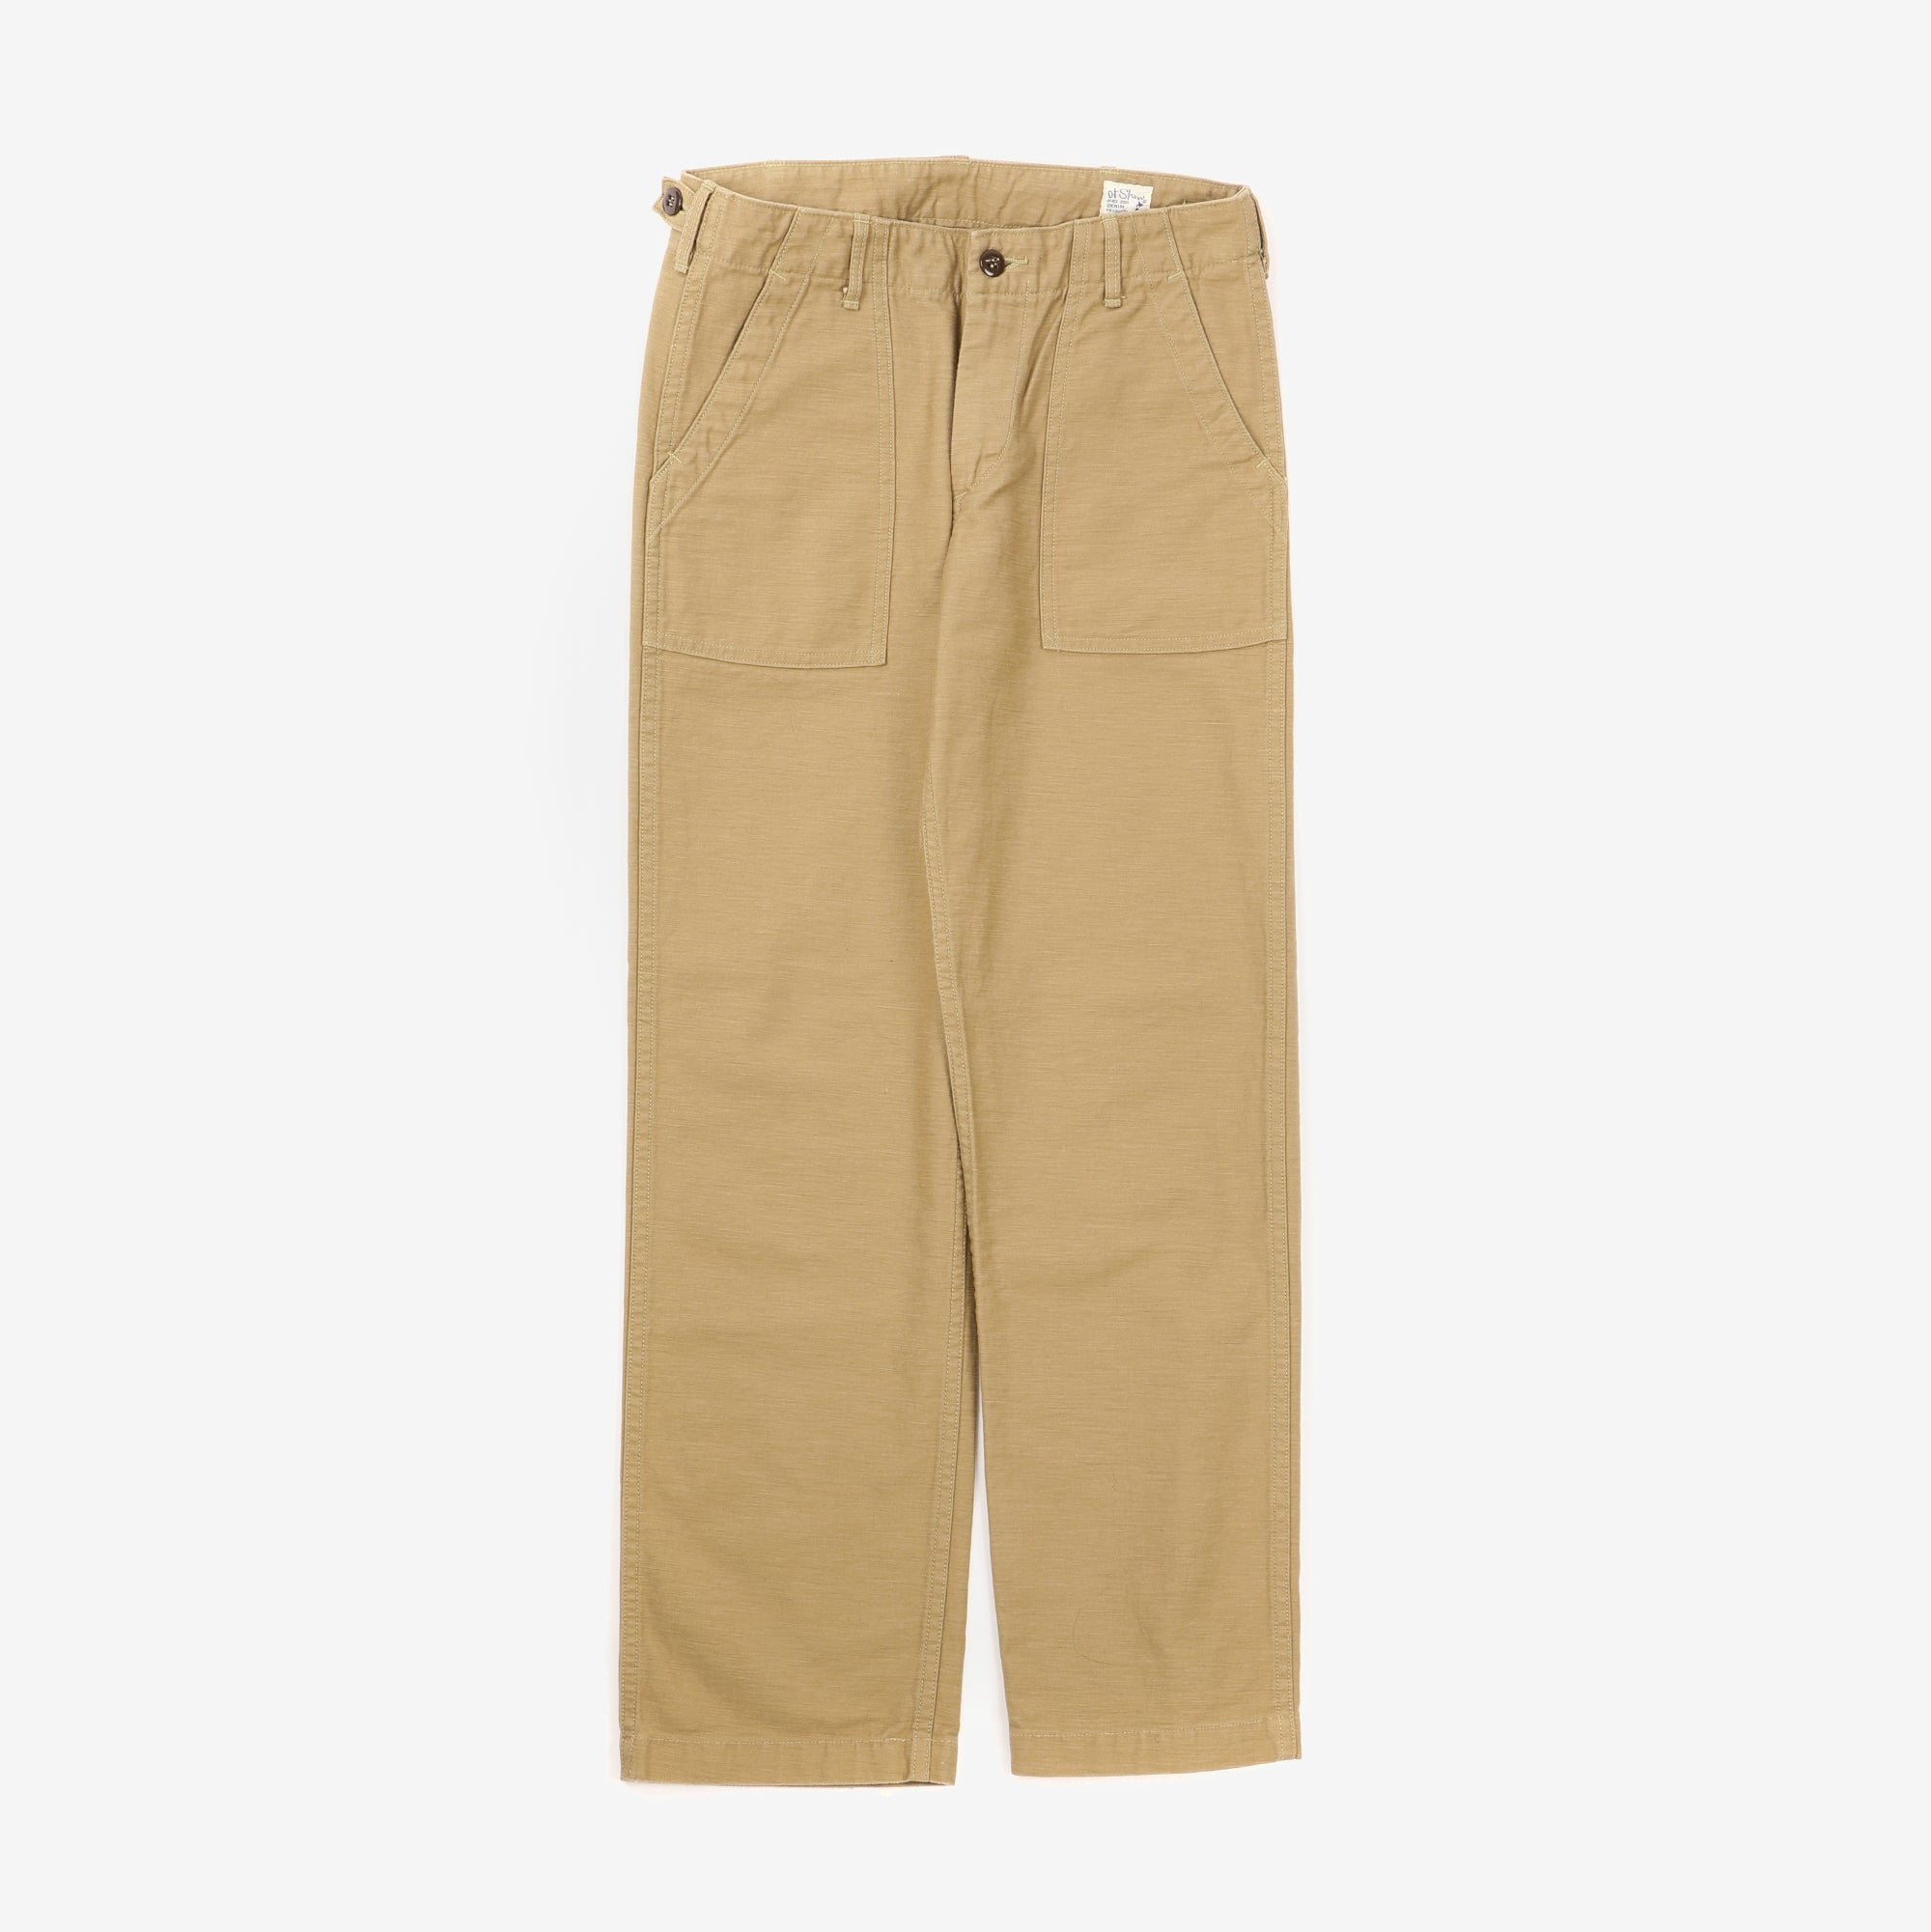 Sateen Fatigue Pants